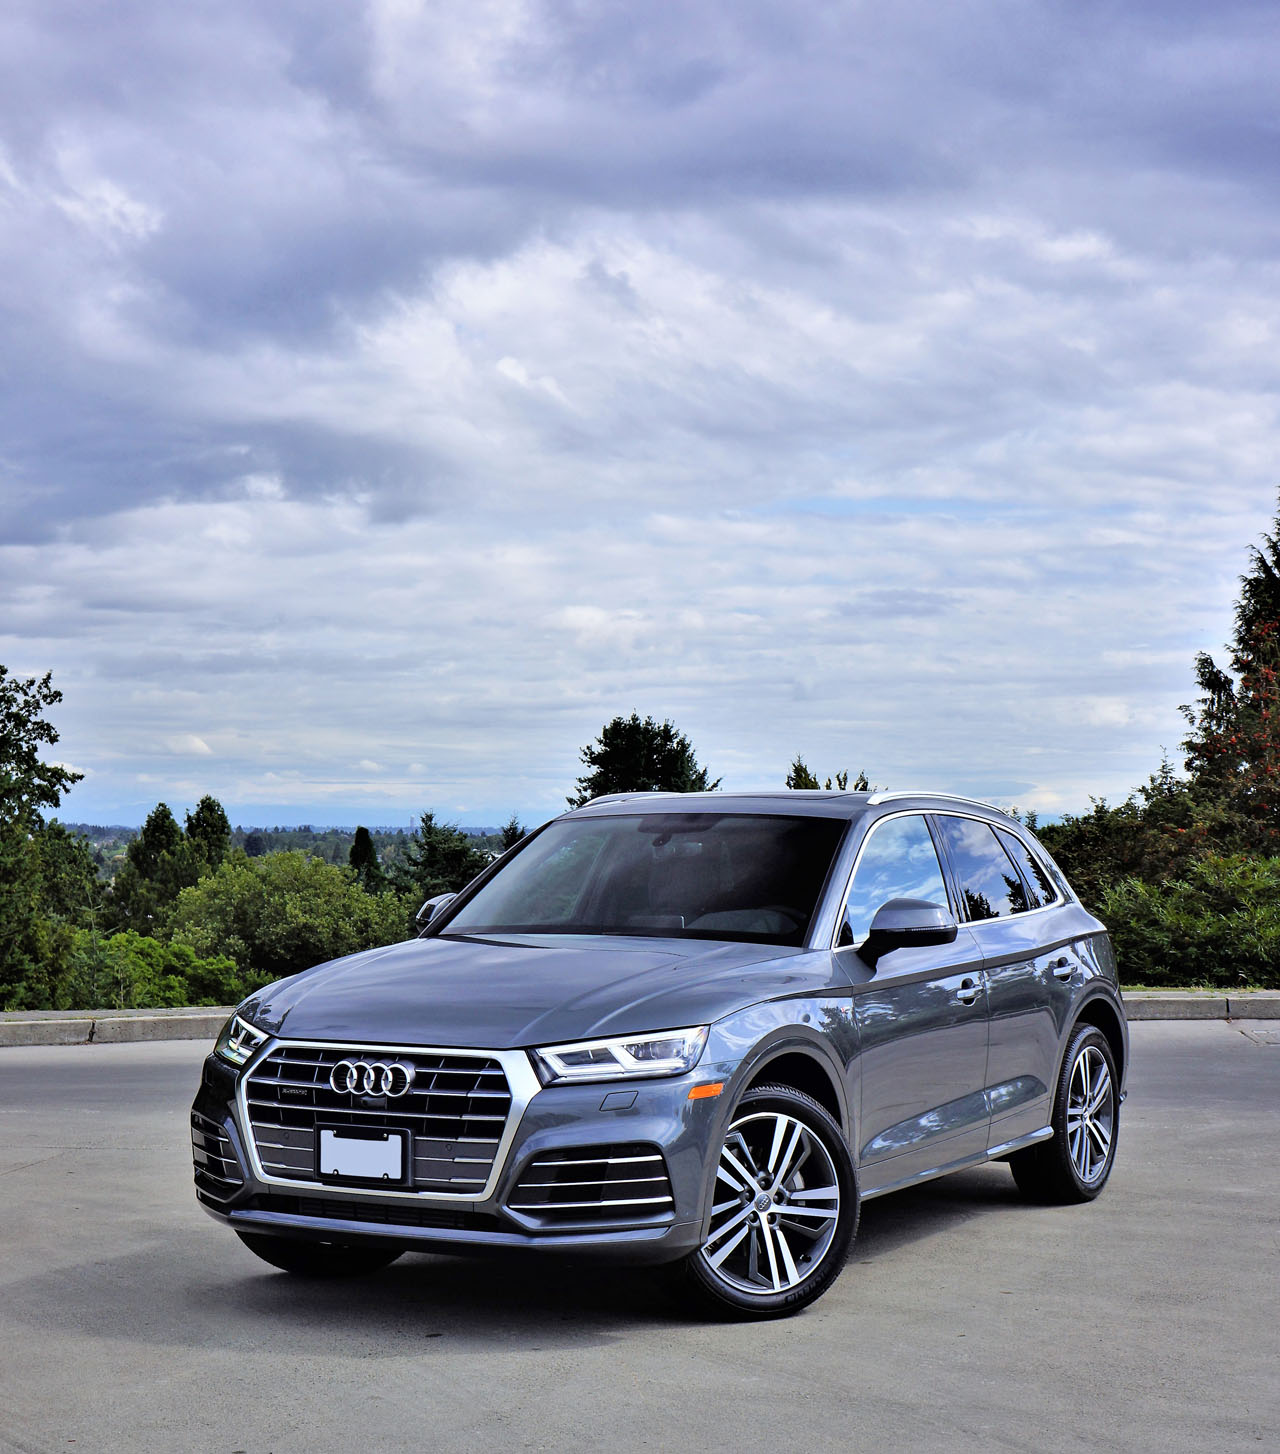 Audi 5 Price: 2018 Audi Q5 2.0 TFSI Quattro Technik Road Test Review